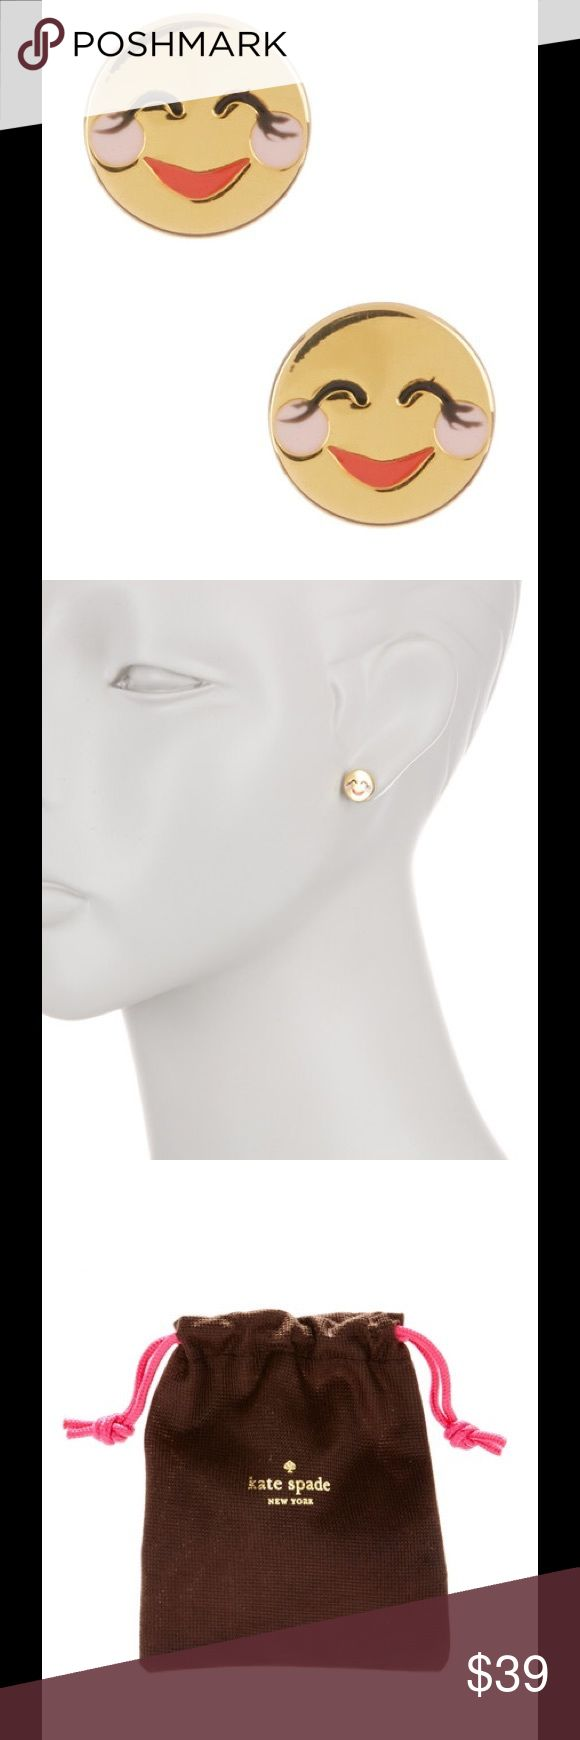 """🆕 Kate Spade Blushing Emoji stud earrings - 12K gold plated enamel detailed clushing emoji stud earrings  - Post back  - Approx. 3/8"""" length  - Imported  Materials 12K gold plated brass, enamel  Brand new with tag.  Smoke free and pet free. kate spade Jewelry Earrings"""